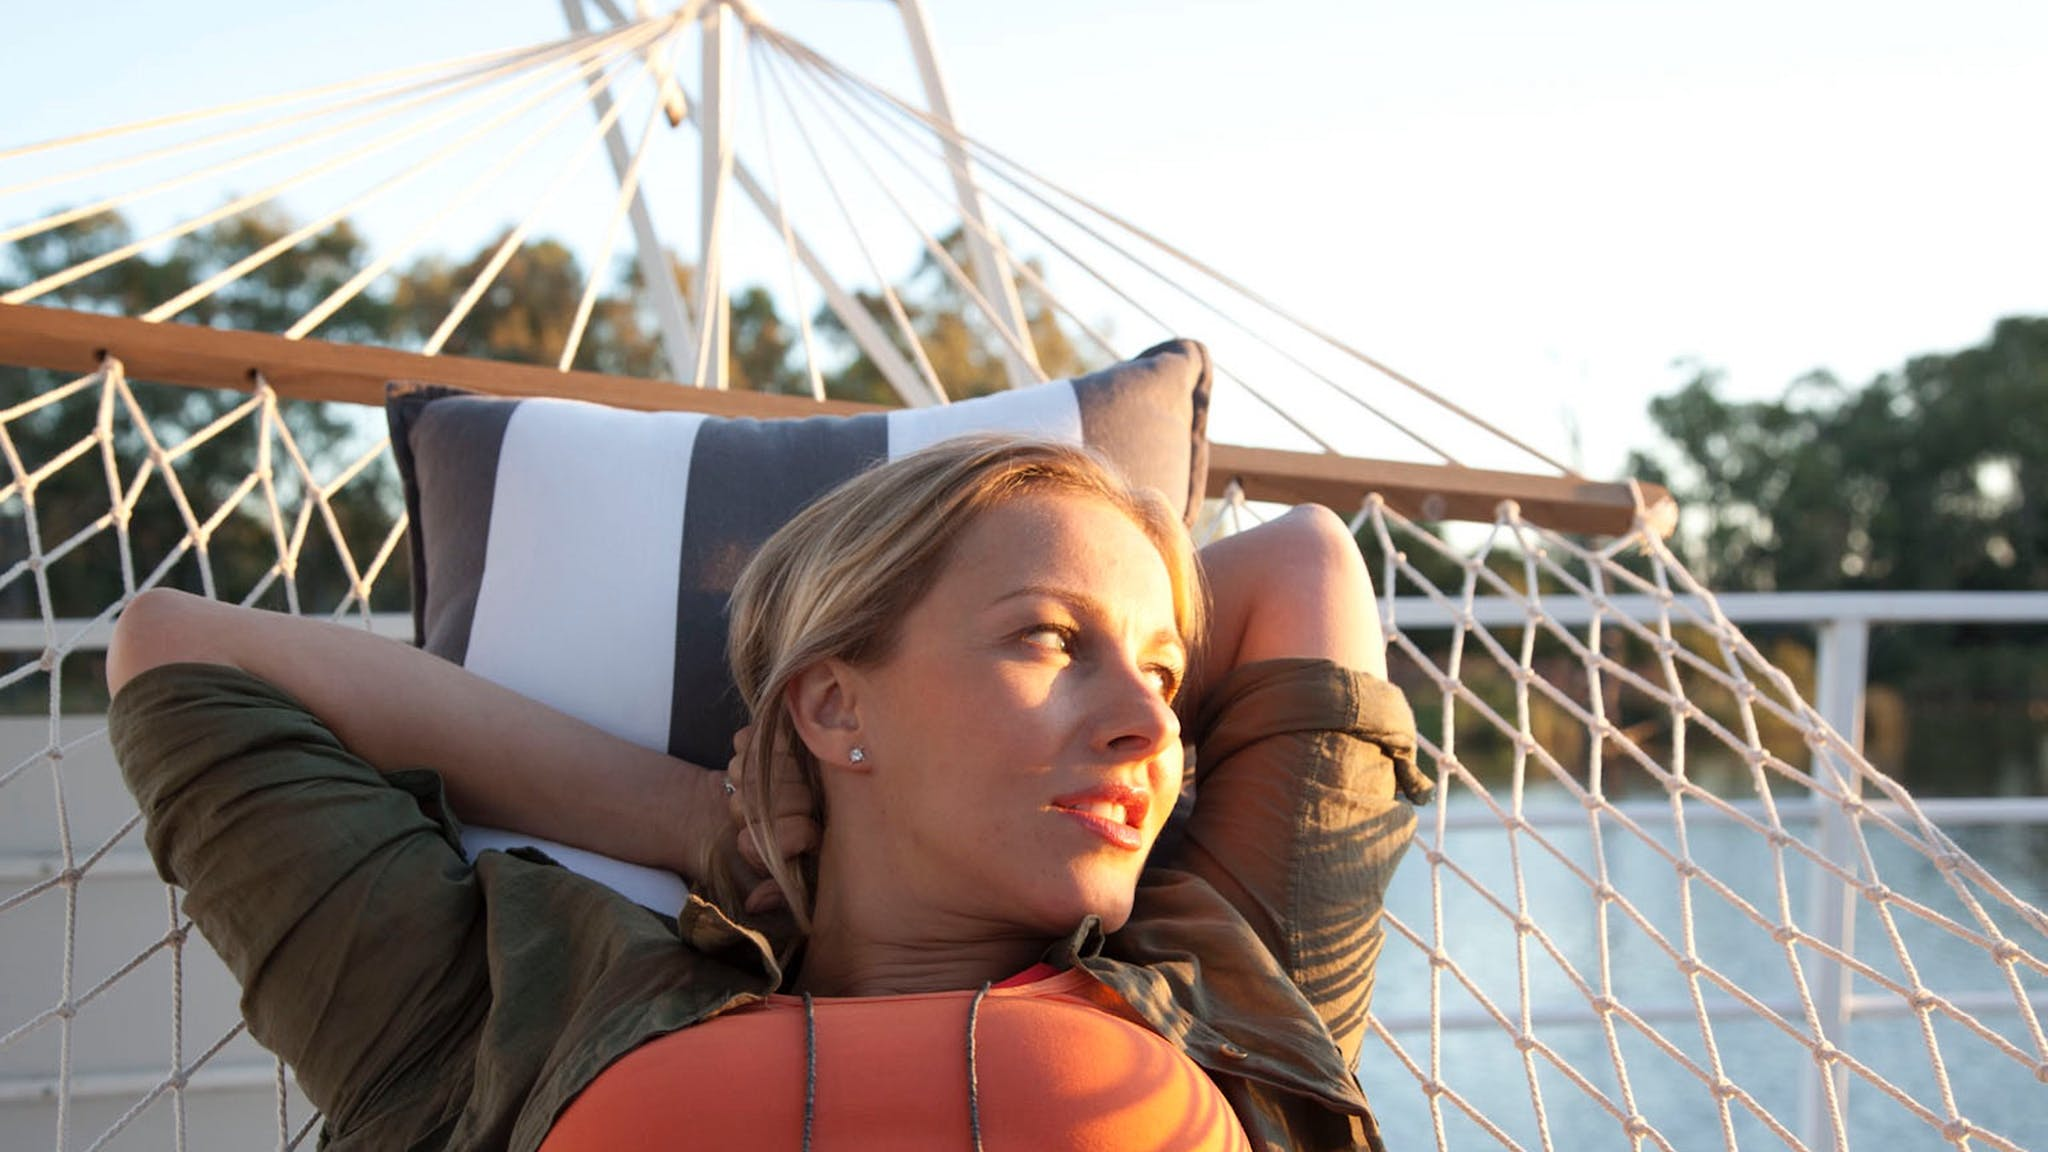 Spend your days relaxing top deck in a hammock